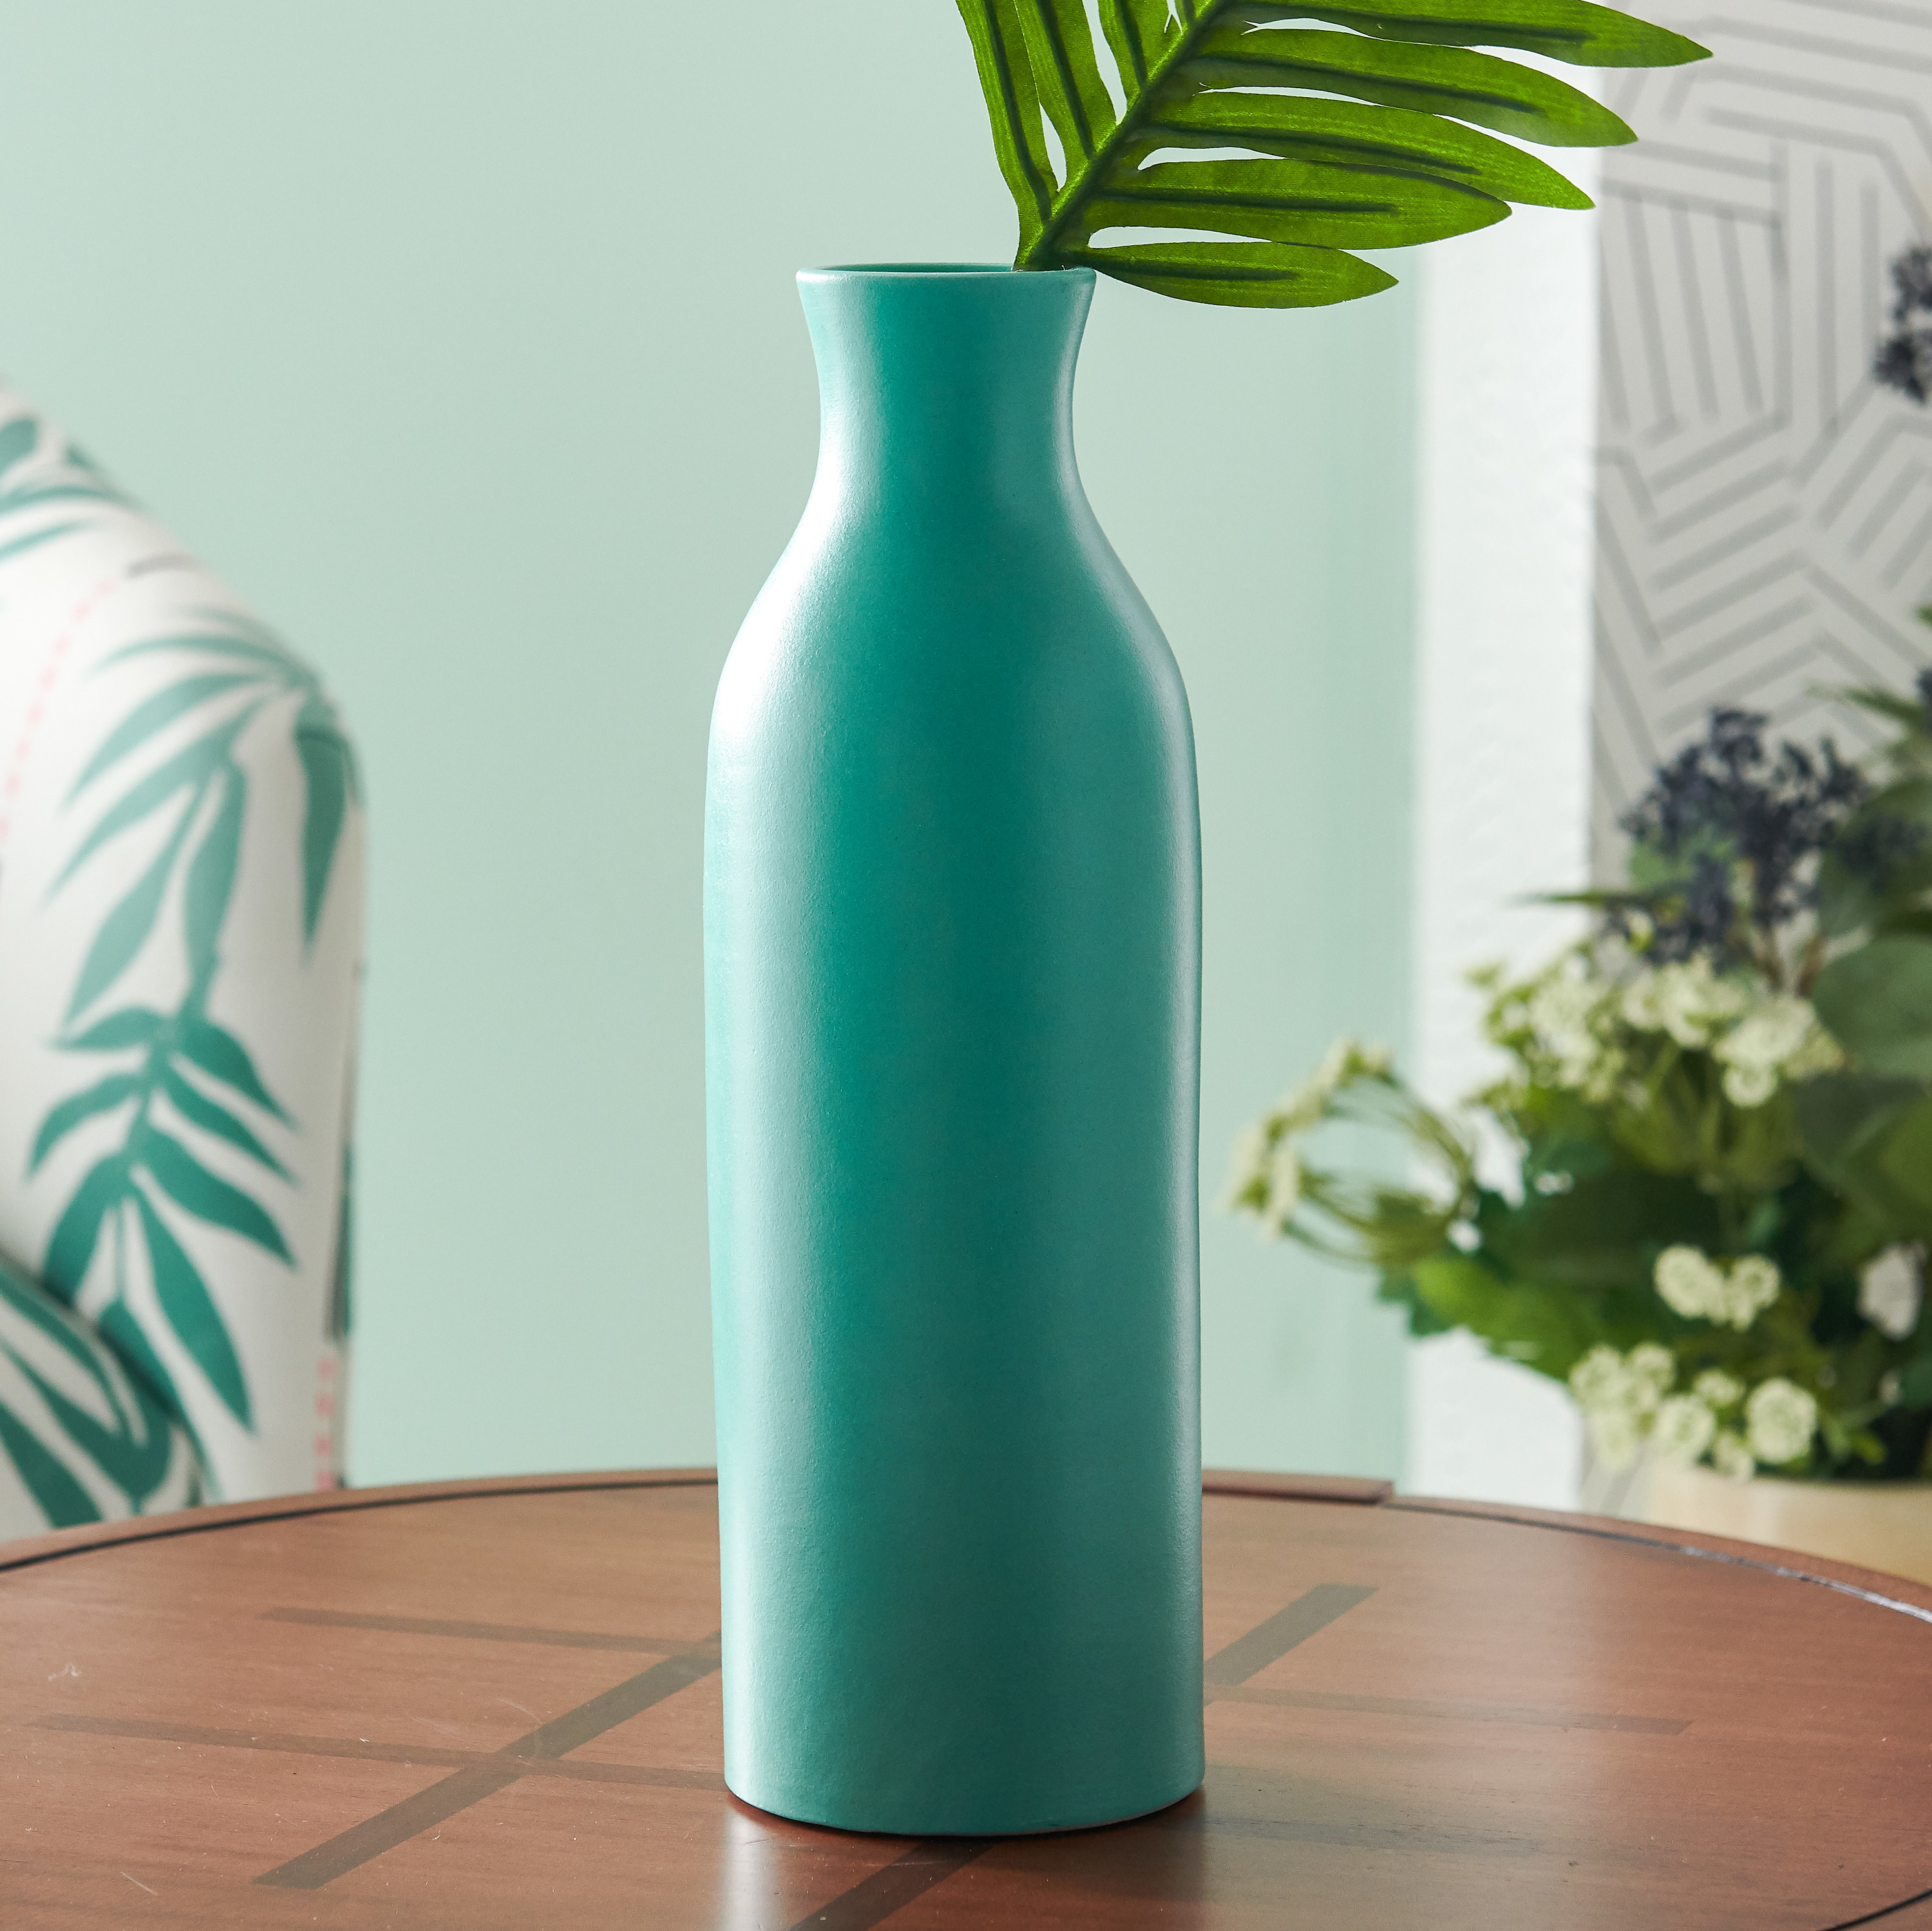 An aqua-colored round, narrow, and tall vase